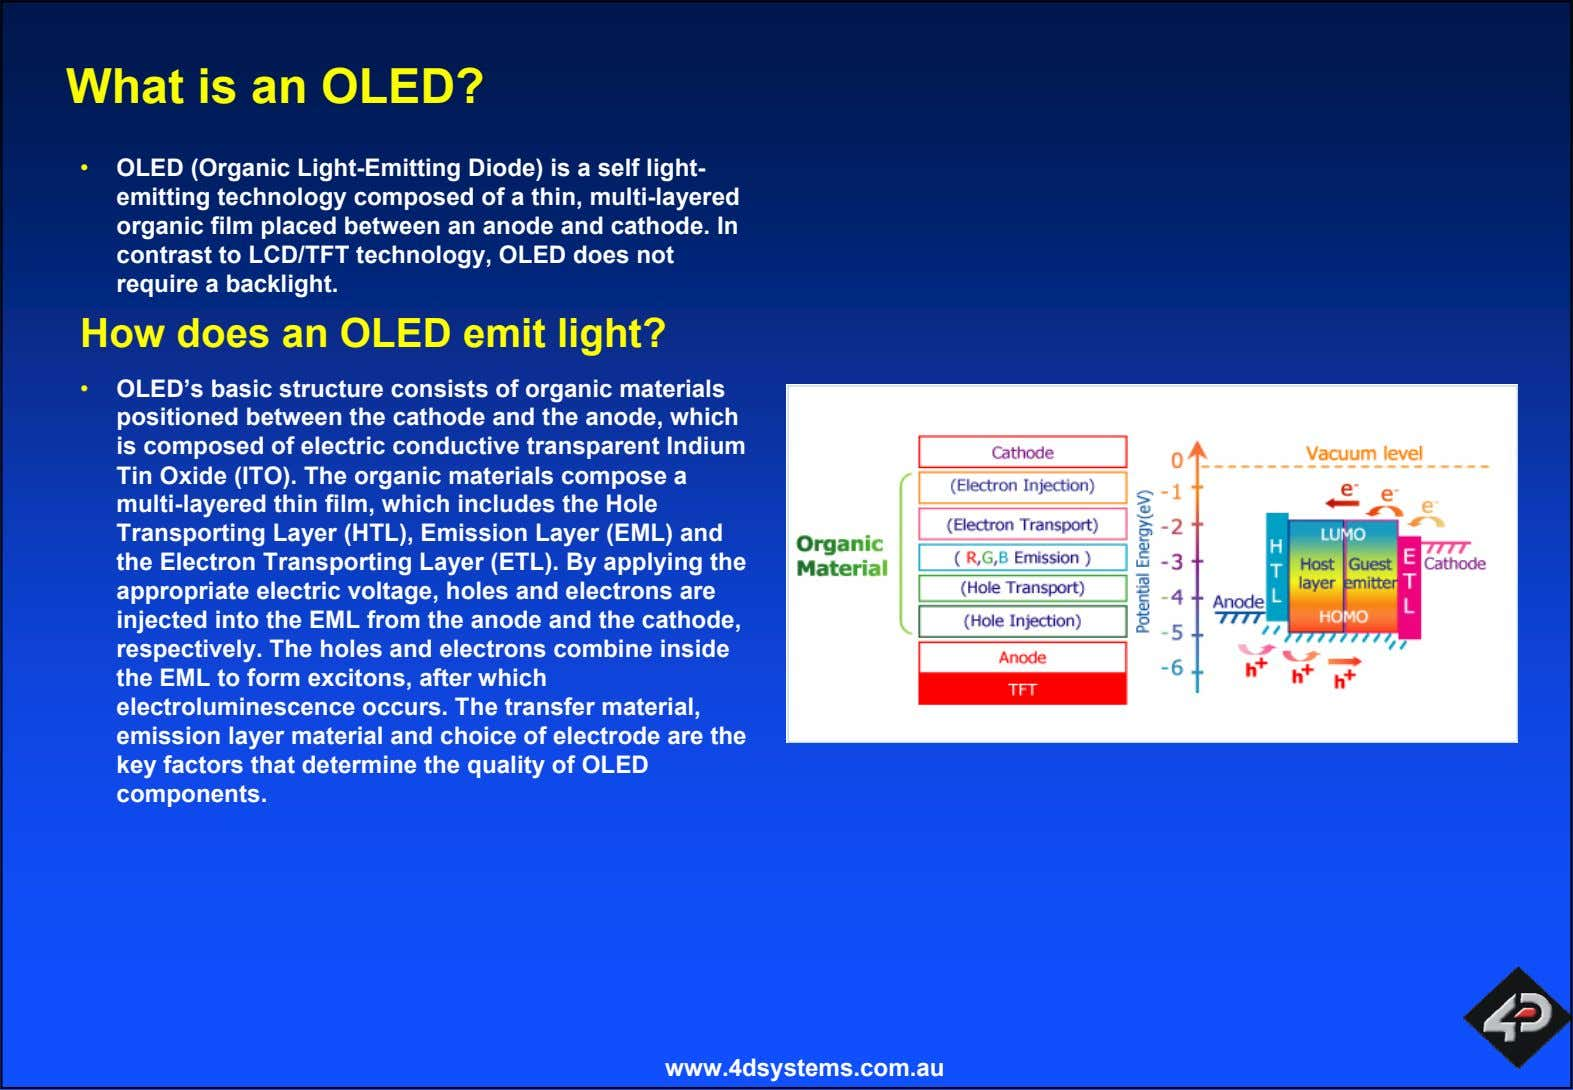 What is an OLED? • OLED (Organic Light-Emitting Diode) is a self light- emitting technology